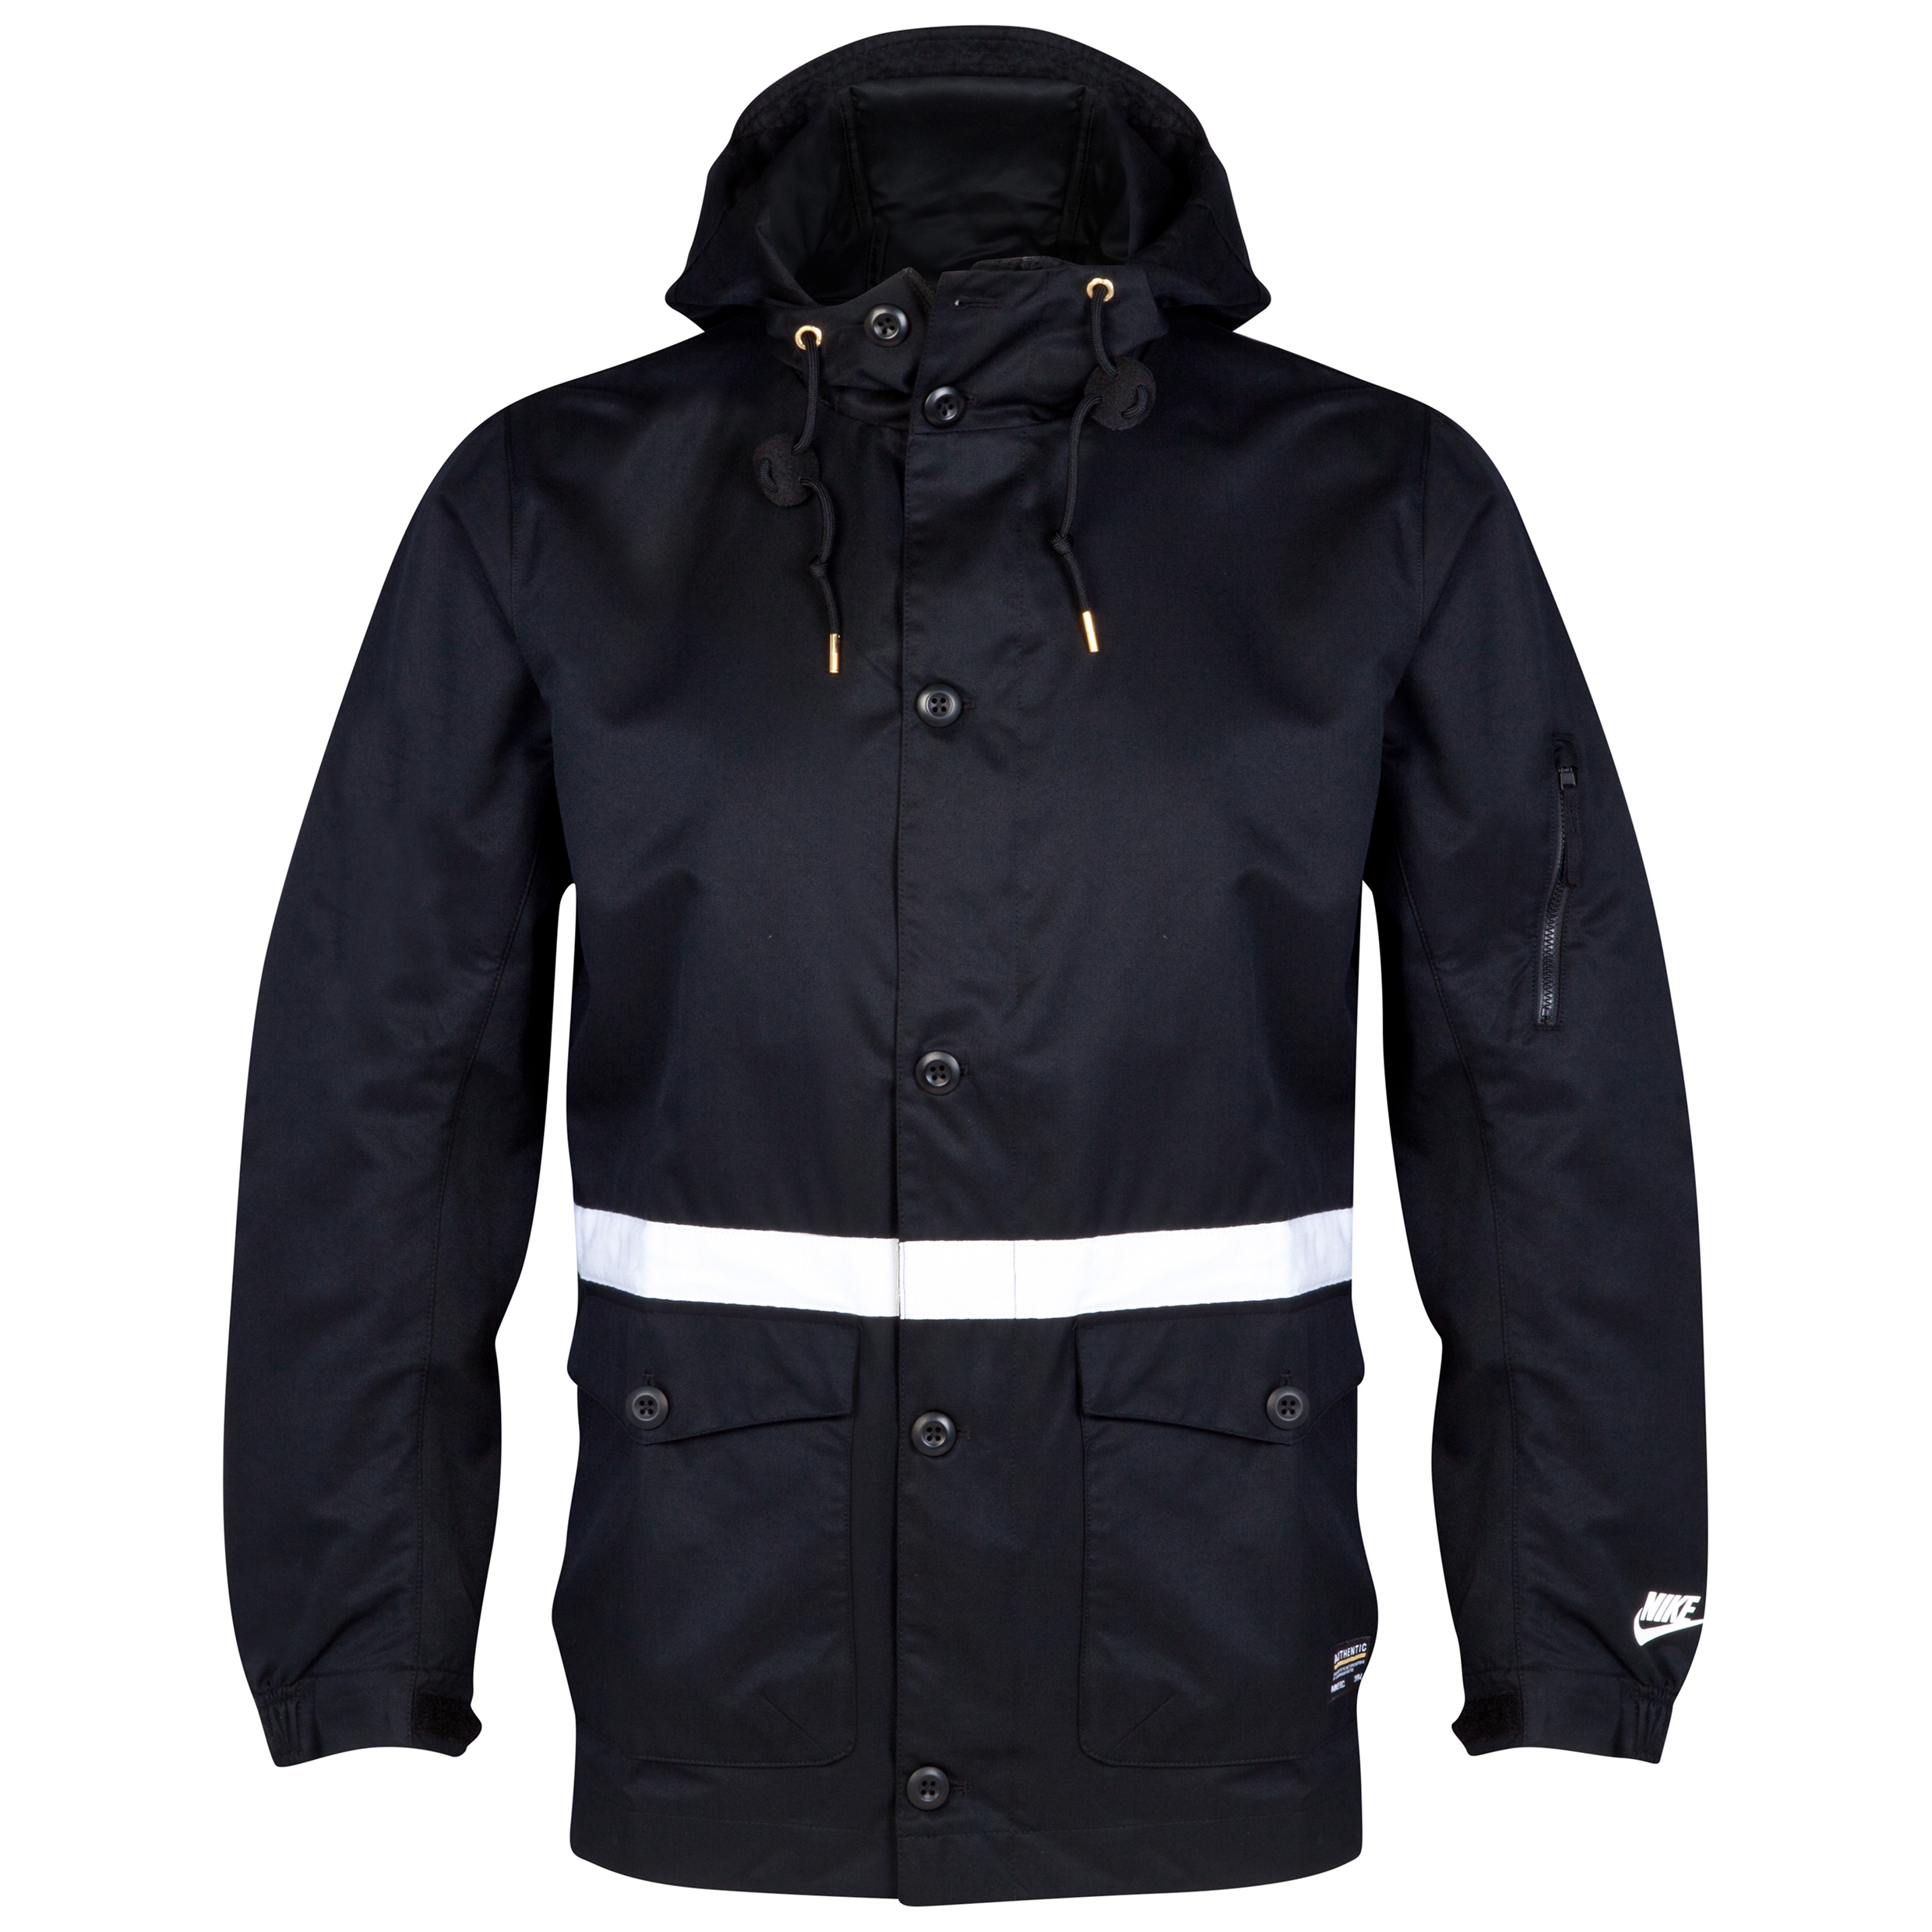 Nike GF Saturday Jacket Black